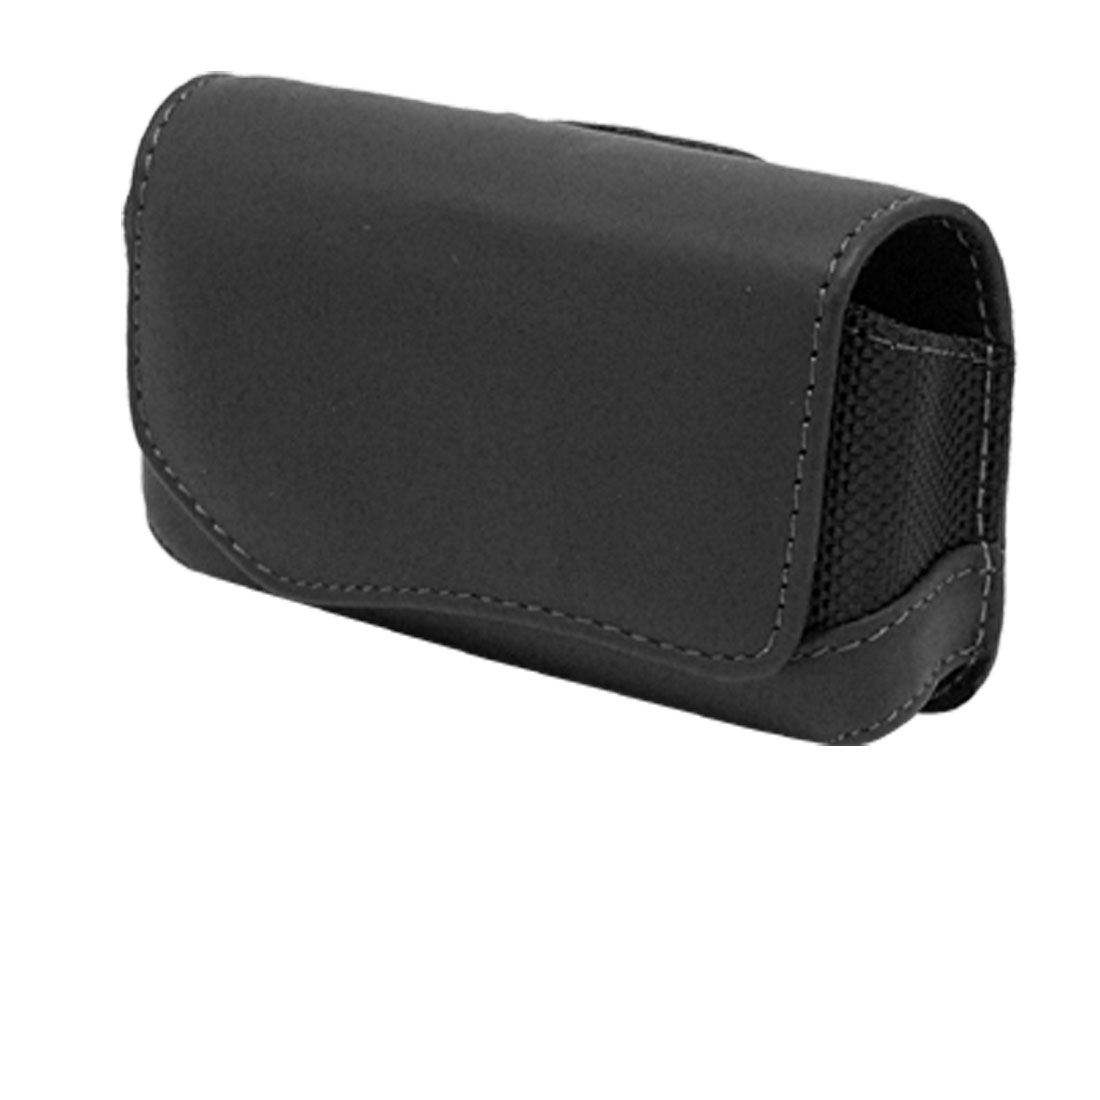 Genuine Leather Case Holder for Nokia 6600 Phone - Black